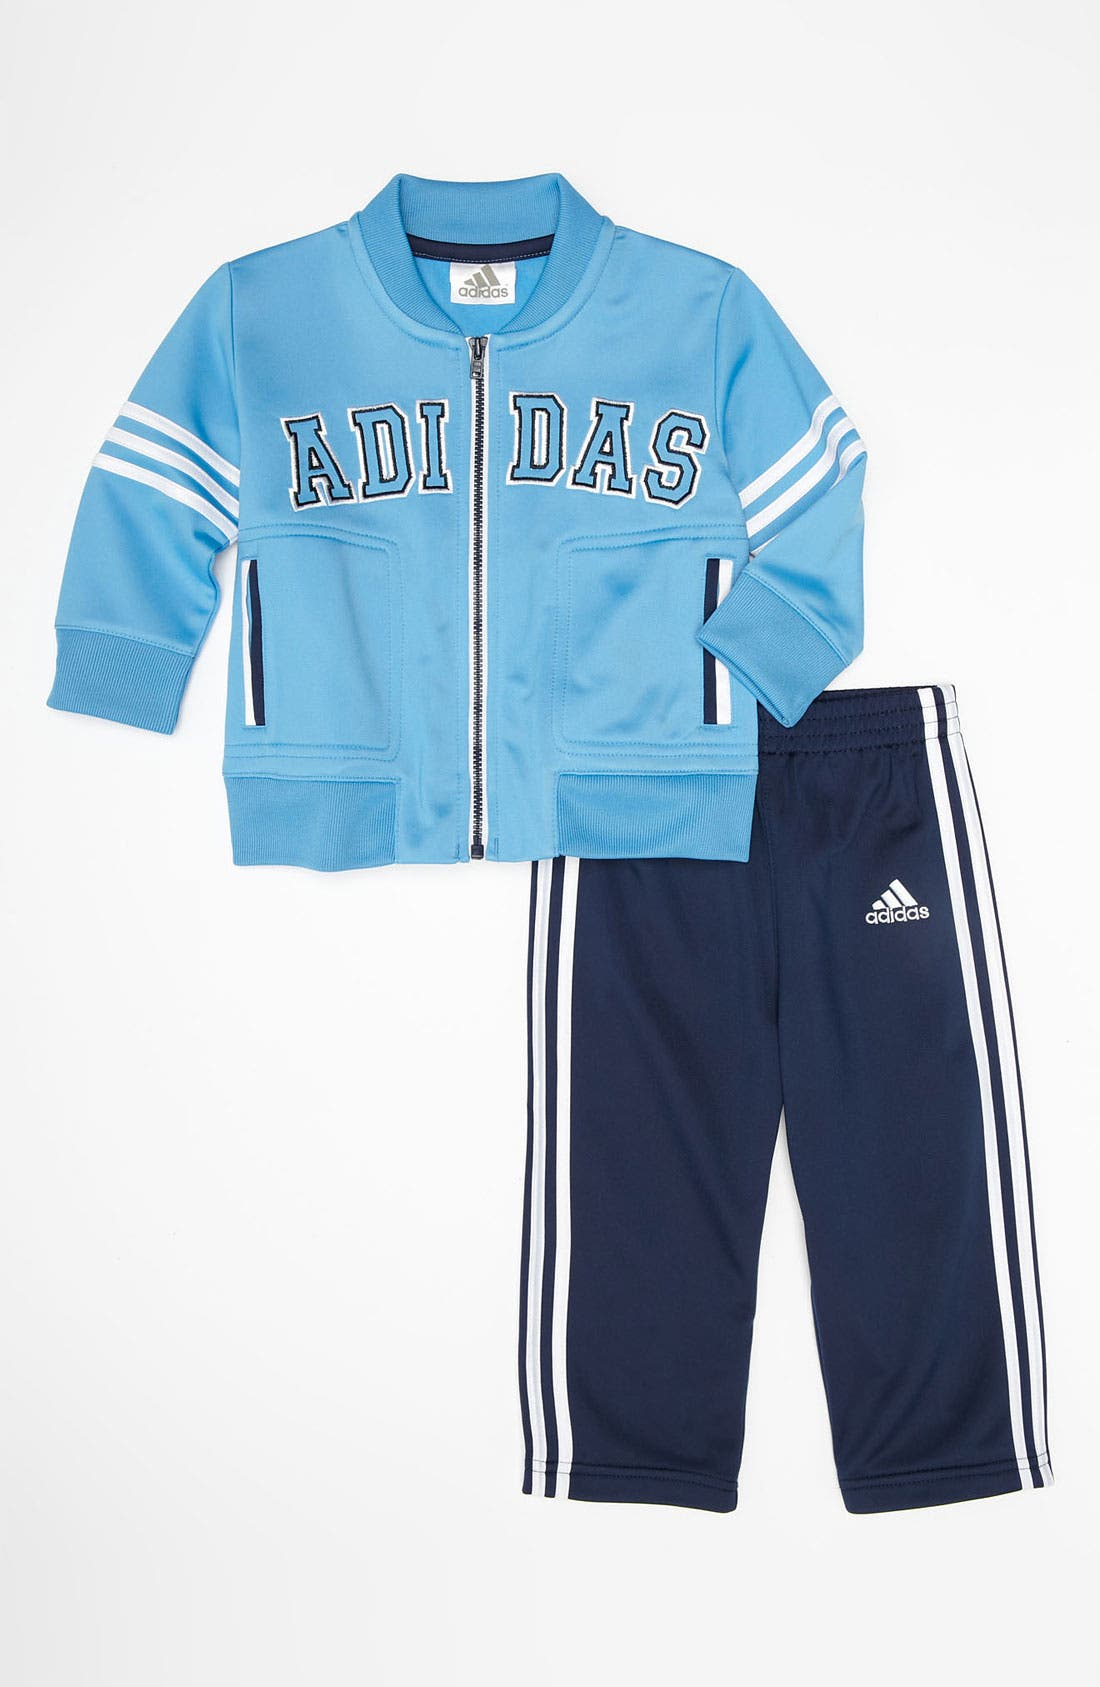 Main Image - adidas 'Team' Jacket & Pants (Infant)